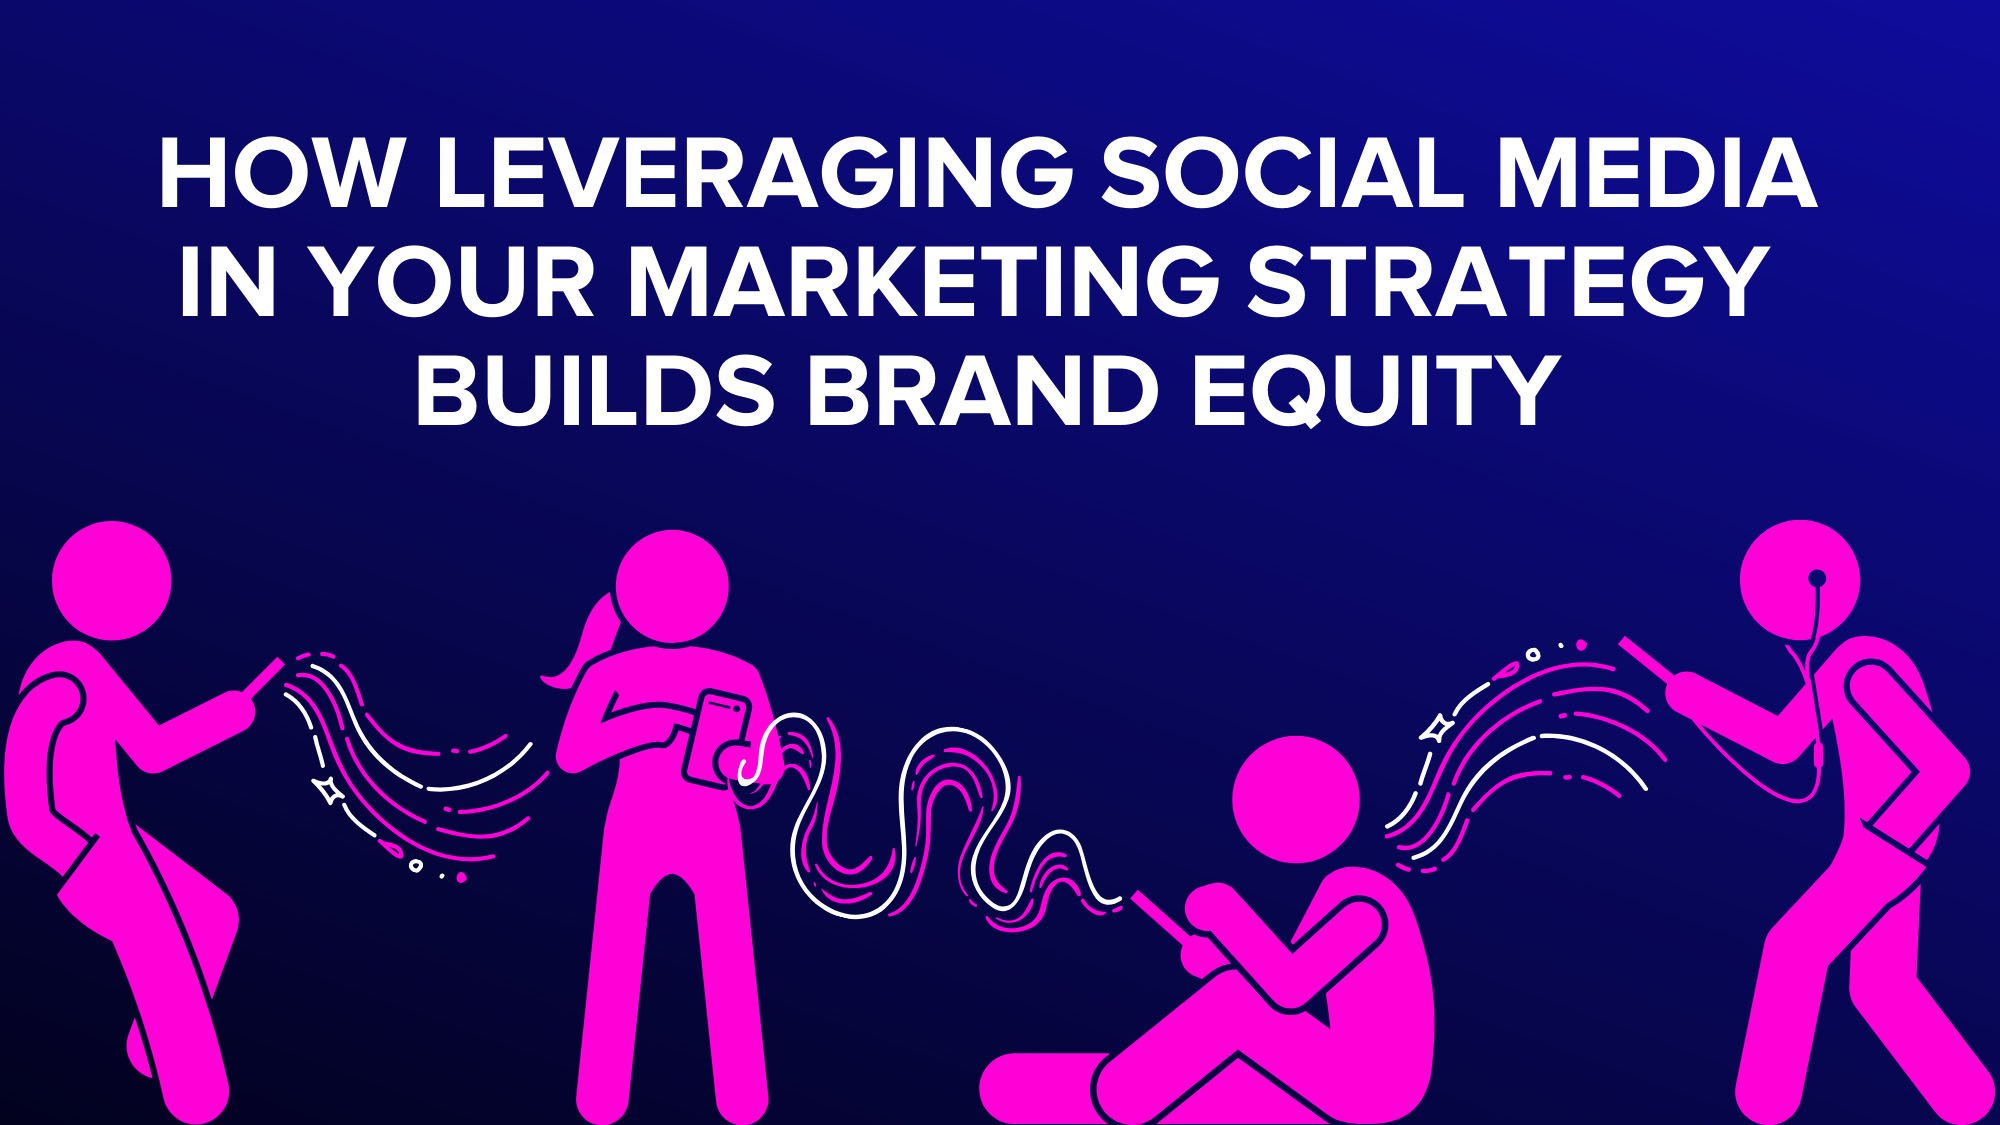 How leveraging social media in your marketing strategy builds brand equity